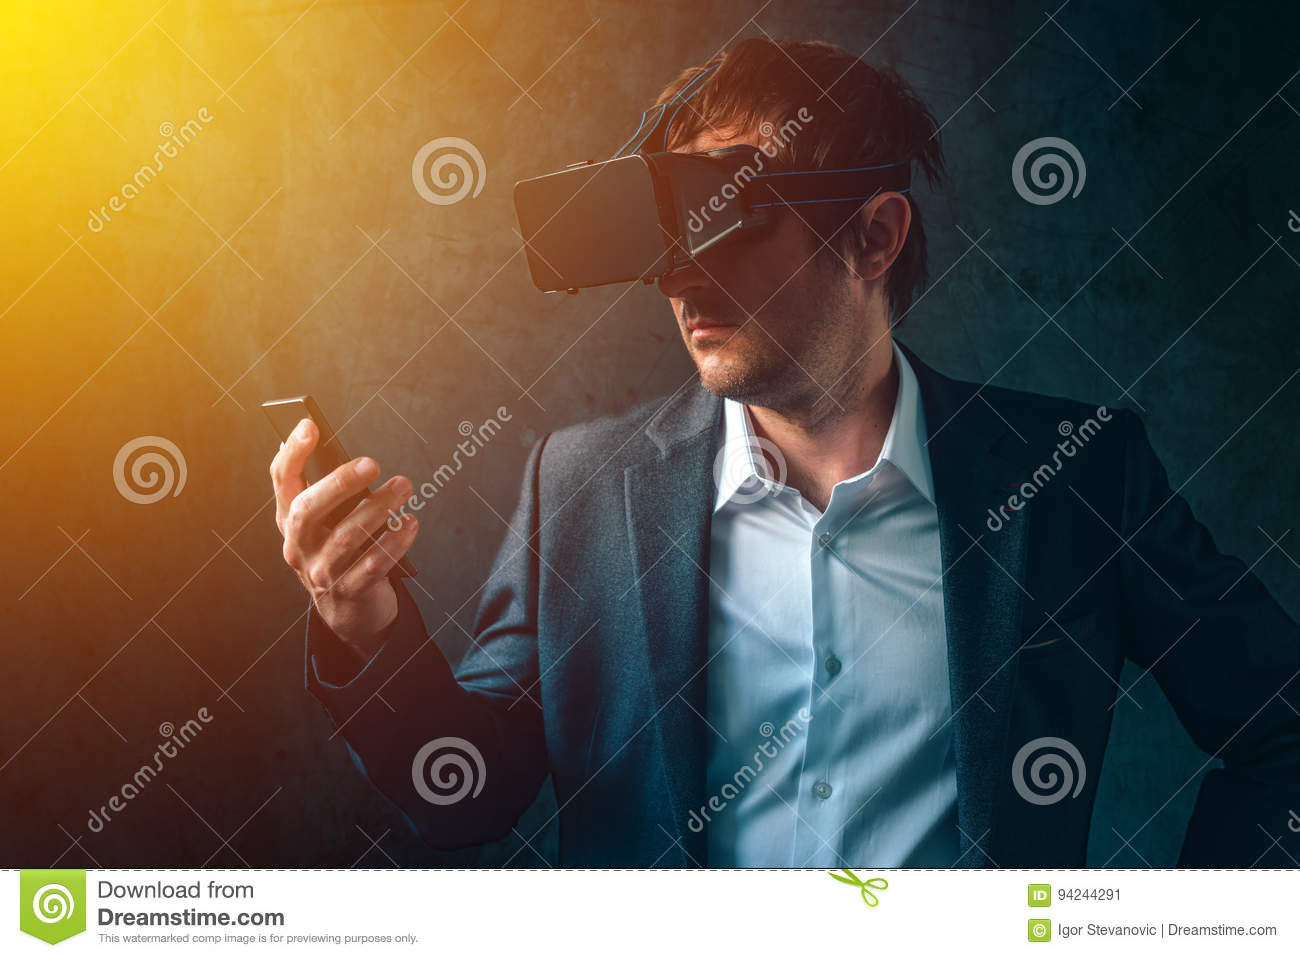 Futuristic technology in modern business, businessman with VR he